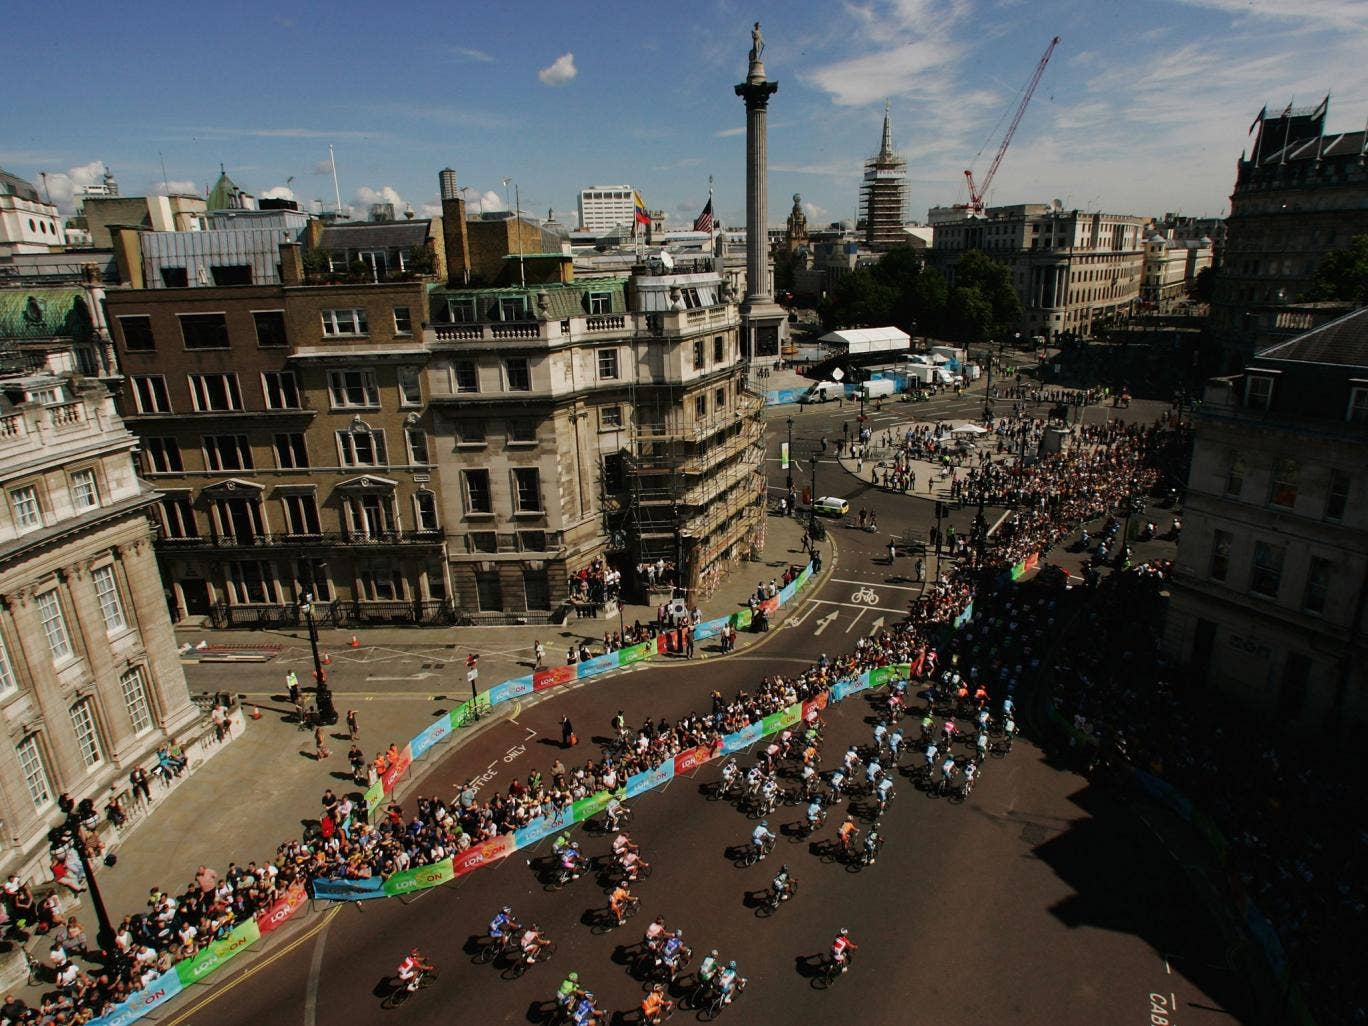 The Mall awaits the finish to Stage 3 - the last time the Tour came to London in 2007